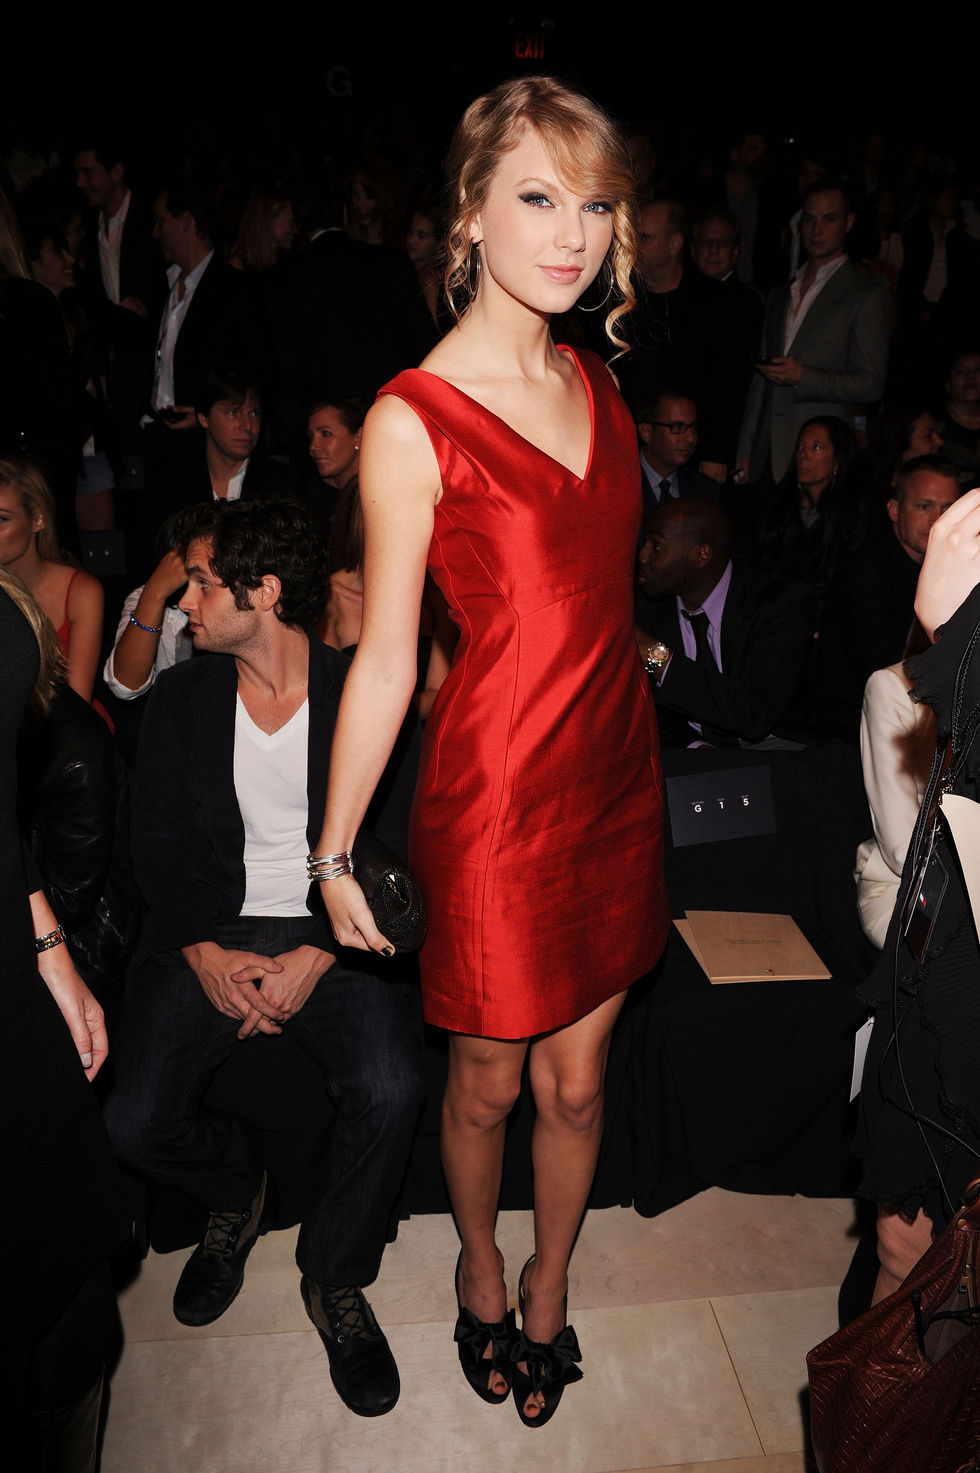 taylor-swift-tommy-hilfiger-spring-2010-fashion-show-01